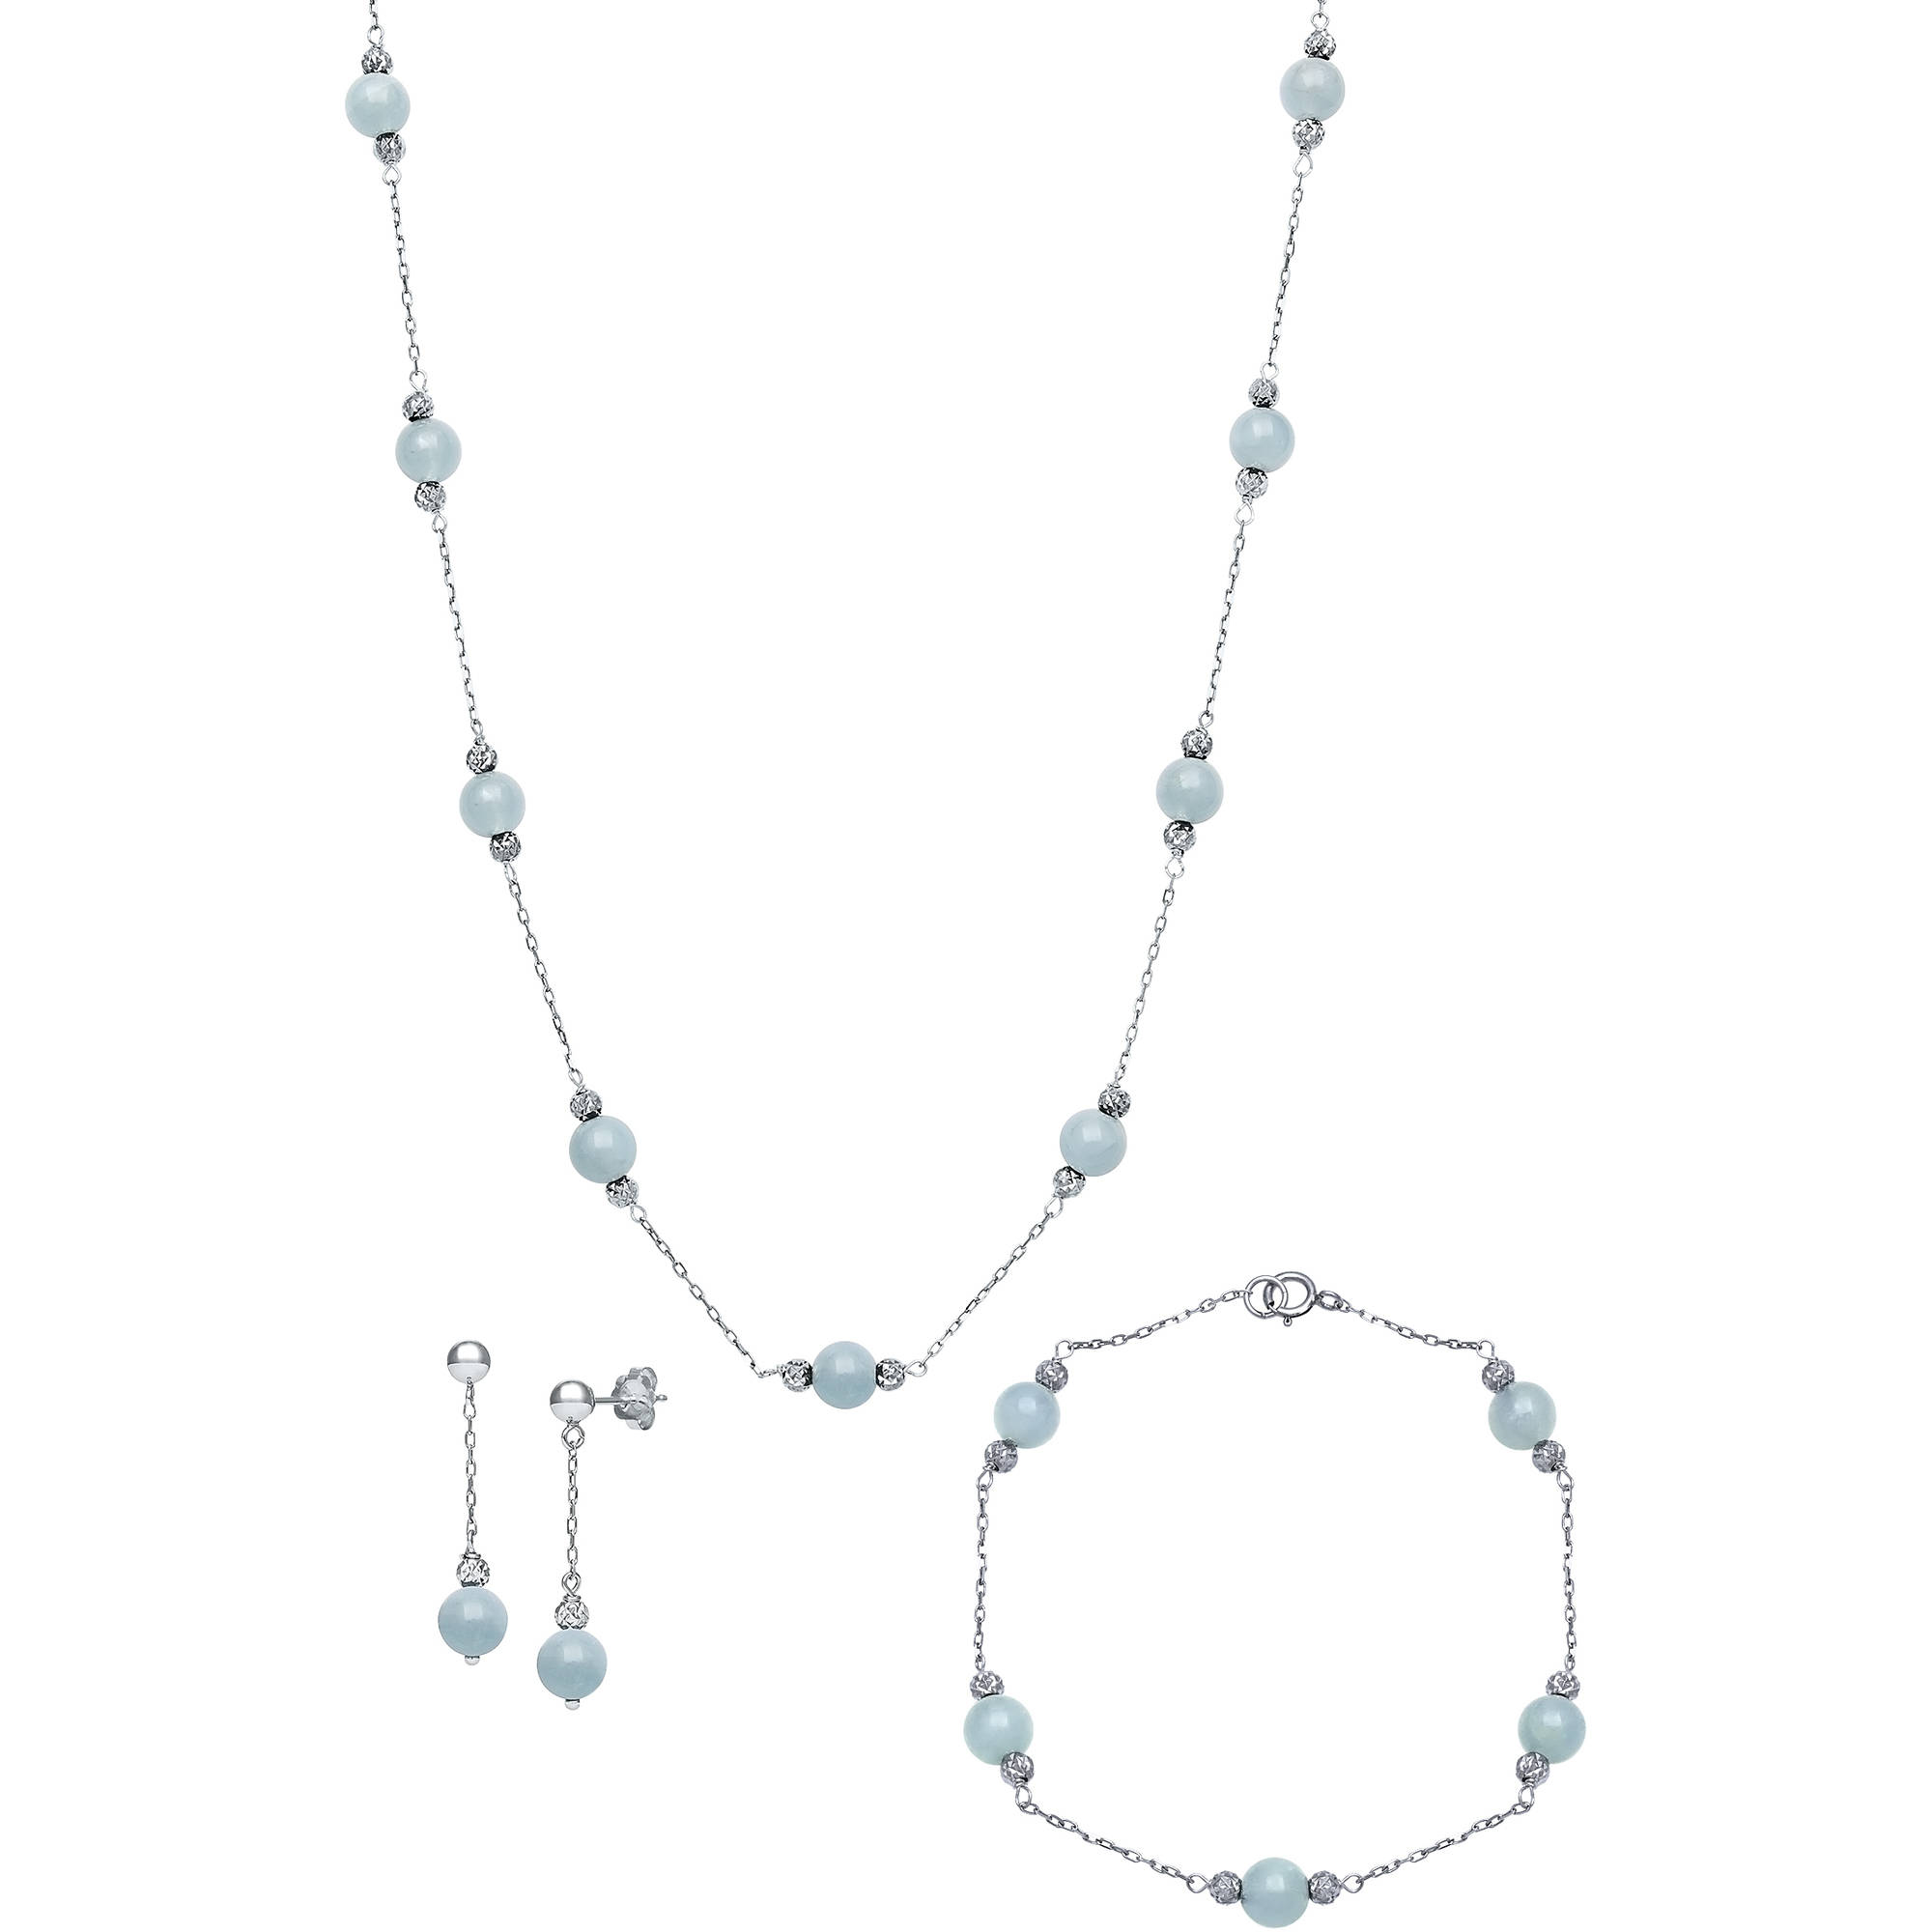 Natural Milky Aquamarine Station Tin Cup Link Necklace,Bracelet, and Drop Earring Jewelry Set by China Pearl